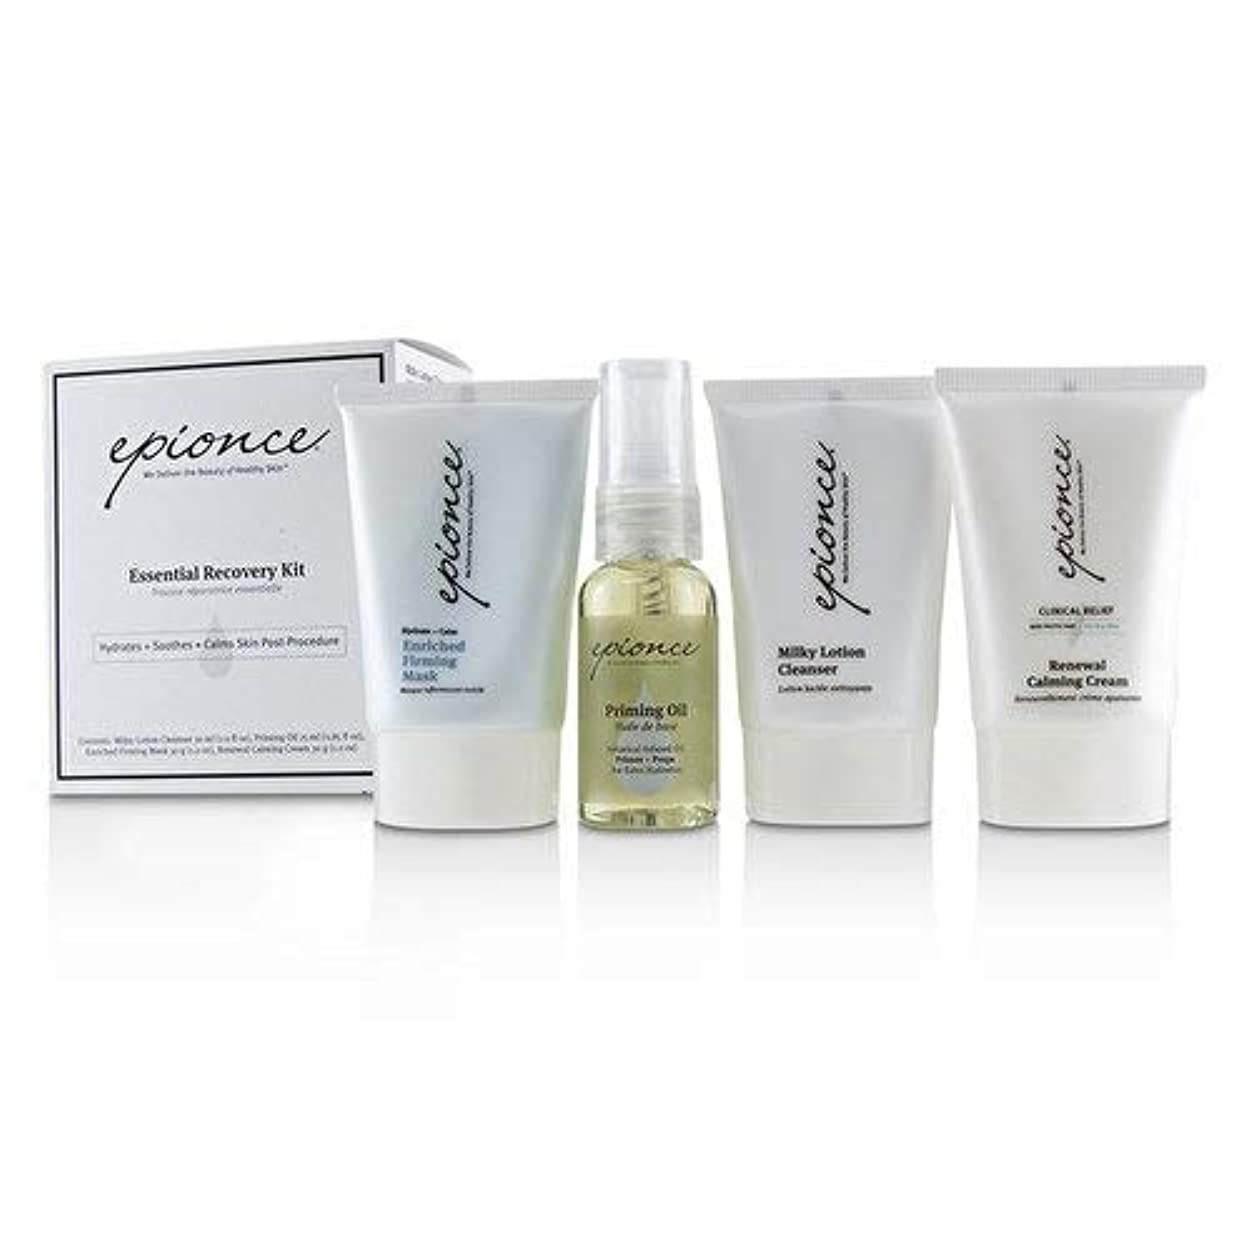 ラブいろいろテザーEpionce Essential Recovery Kit: Milky Lotion Cleanser 30ml+ Priming Oil 25ml+ Enriched Firming Mask 30g+ Renewal...